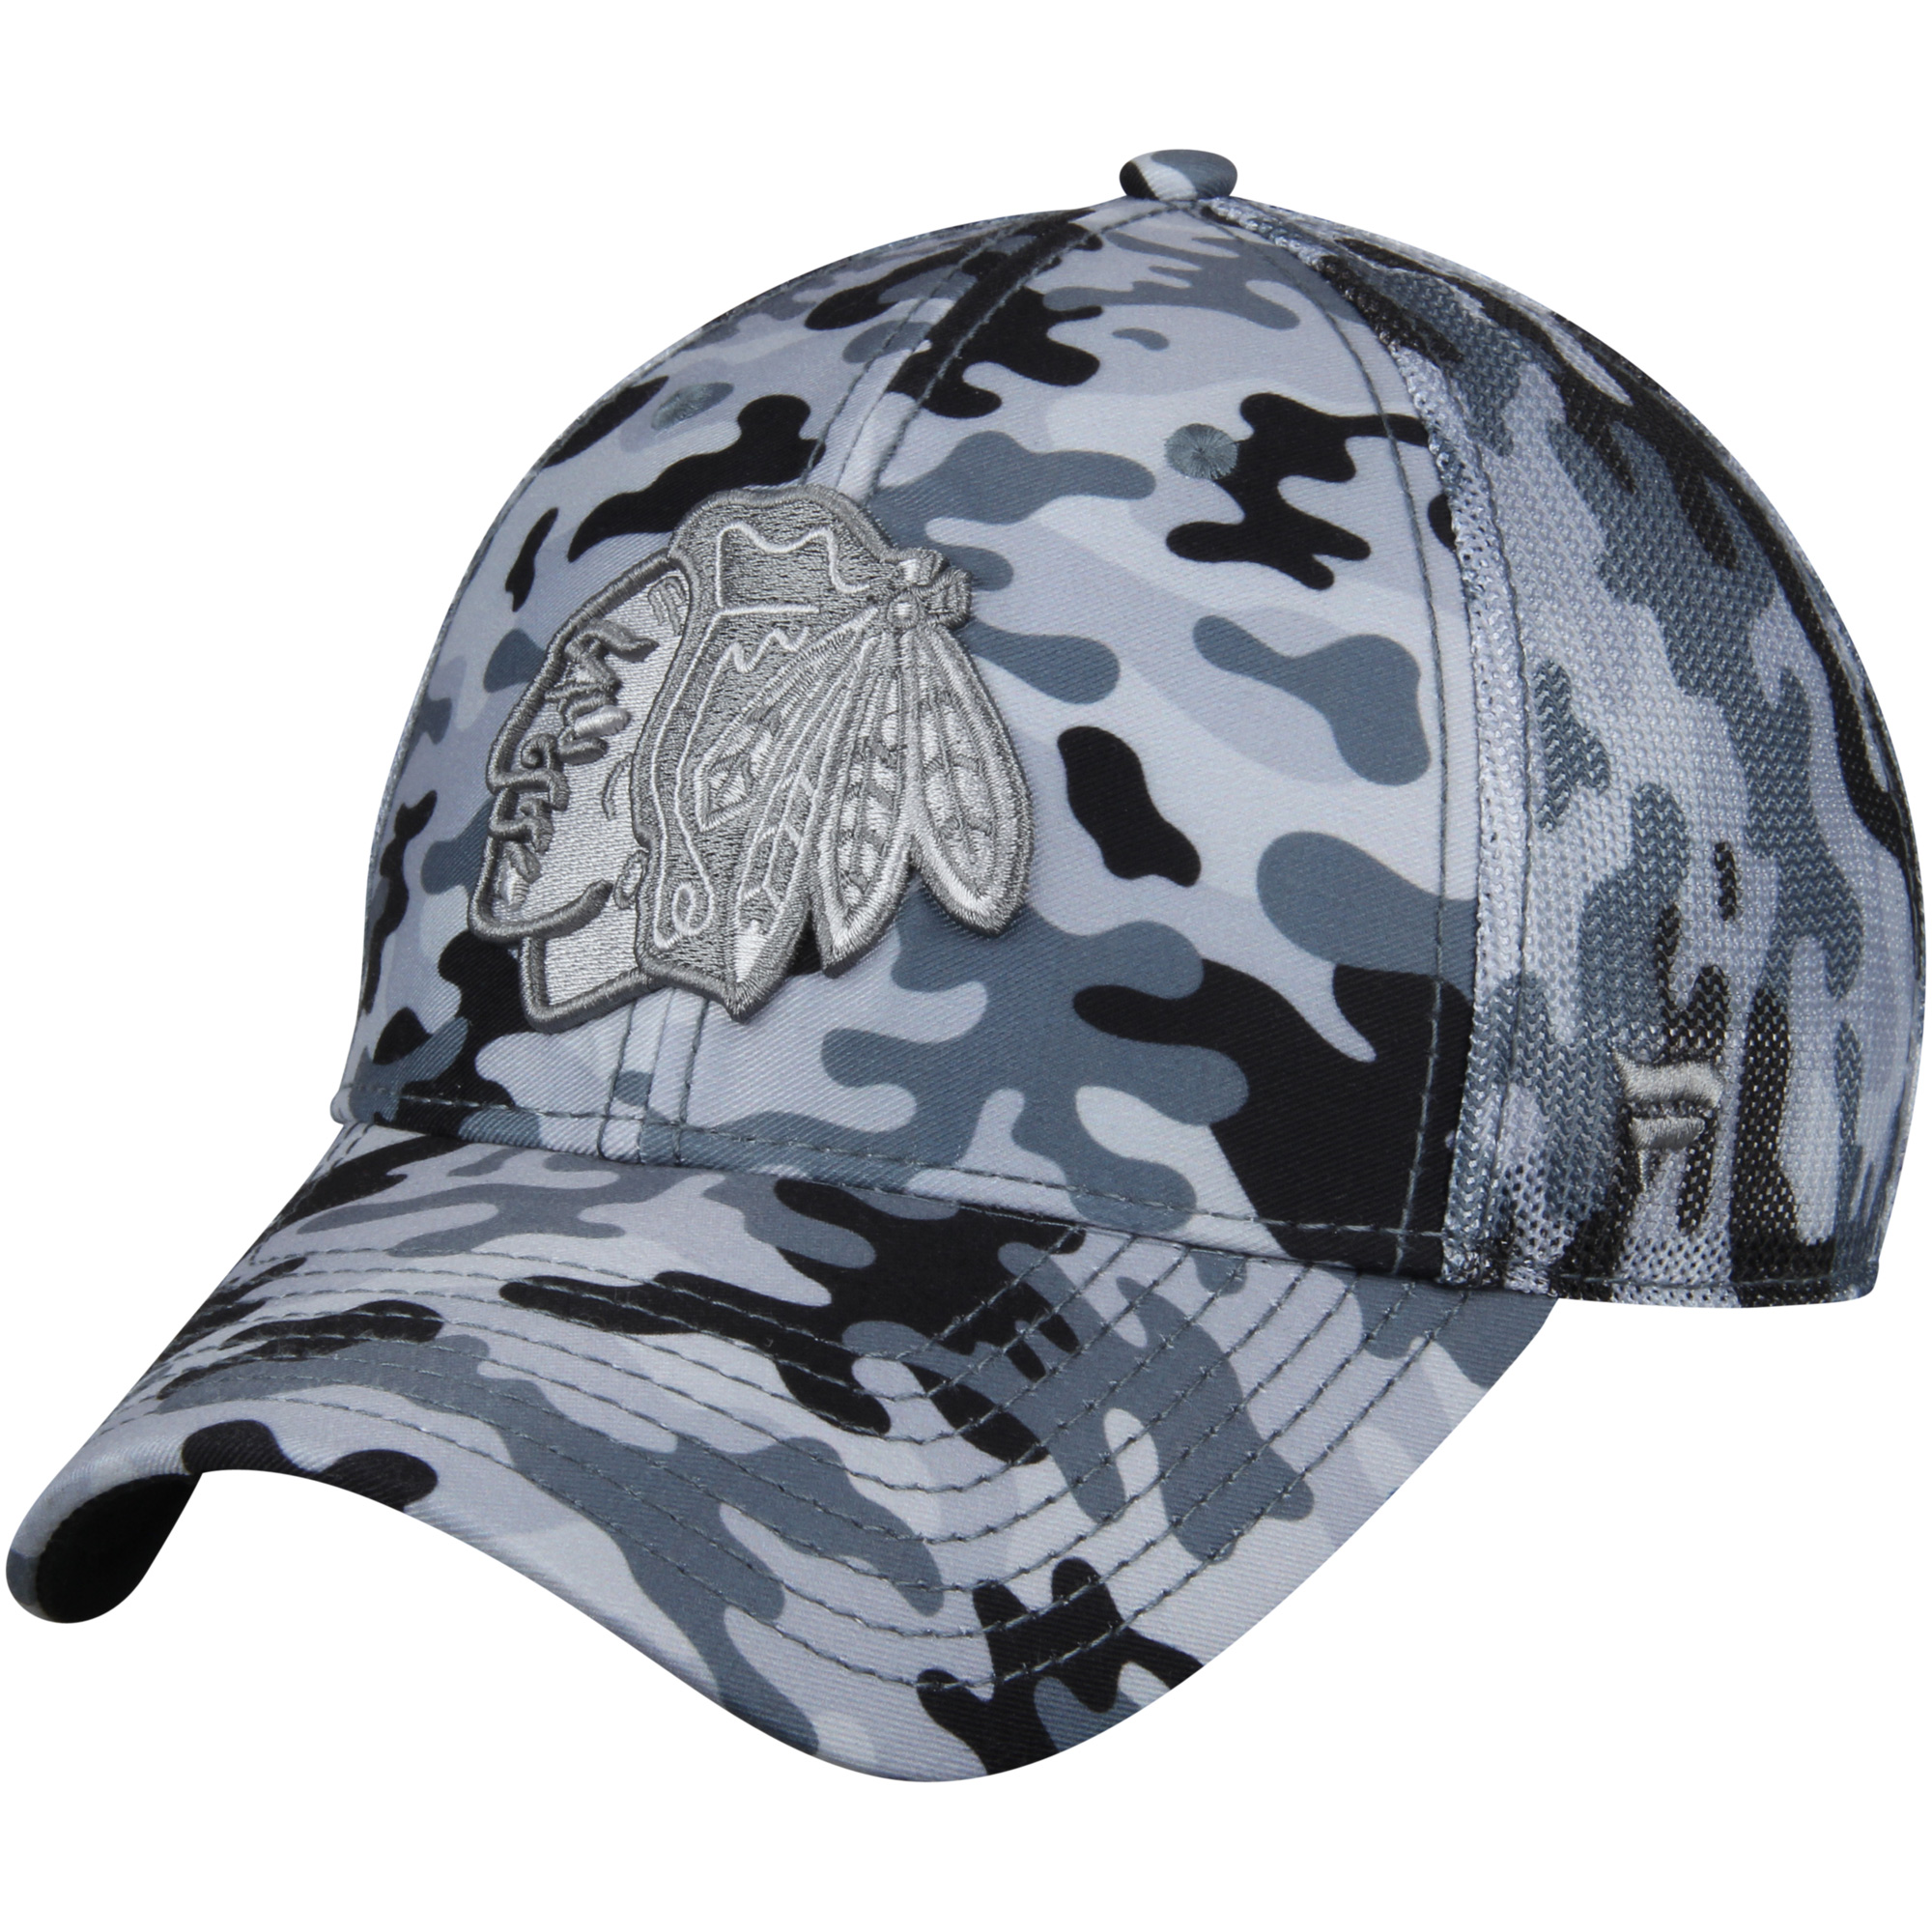 Chicago Blackhawks Fanatics Branded Urban Trucker Adjustable Hat - Camo/Gray - OSFA